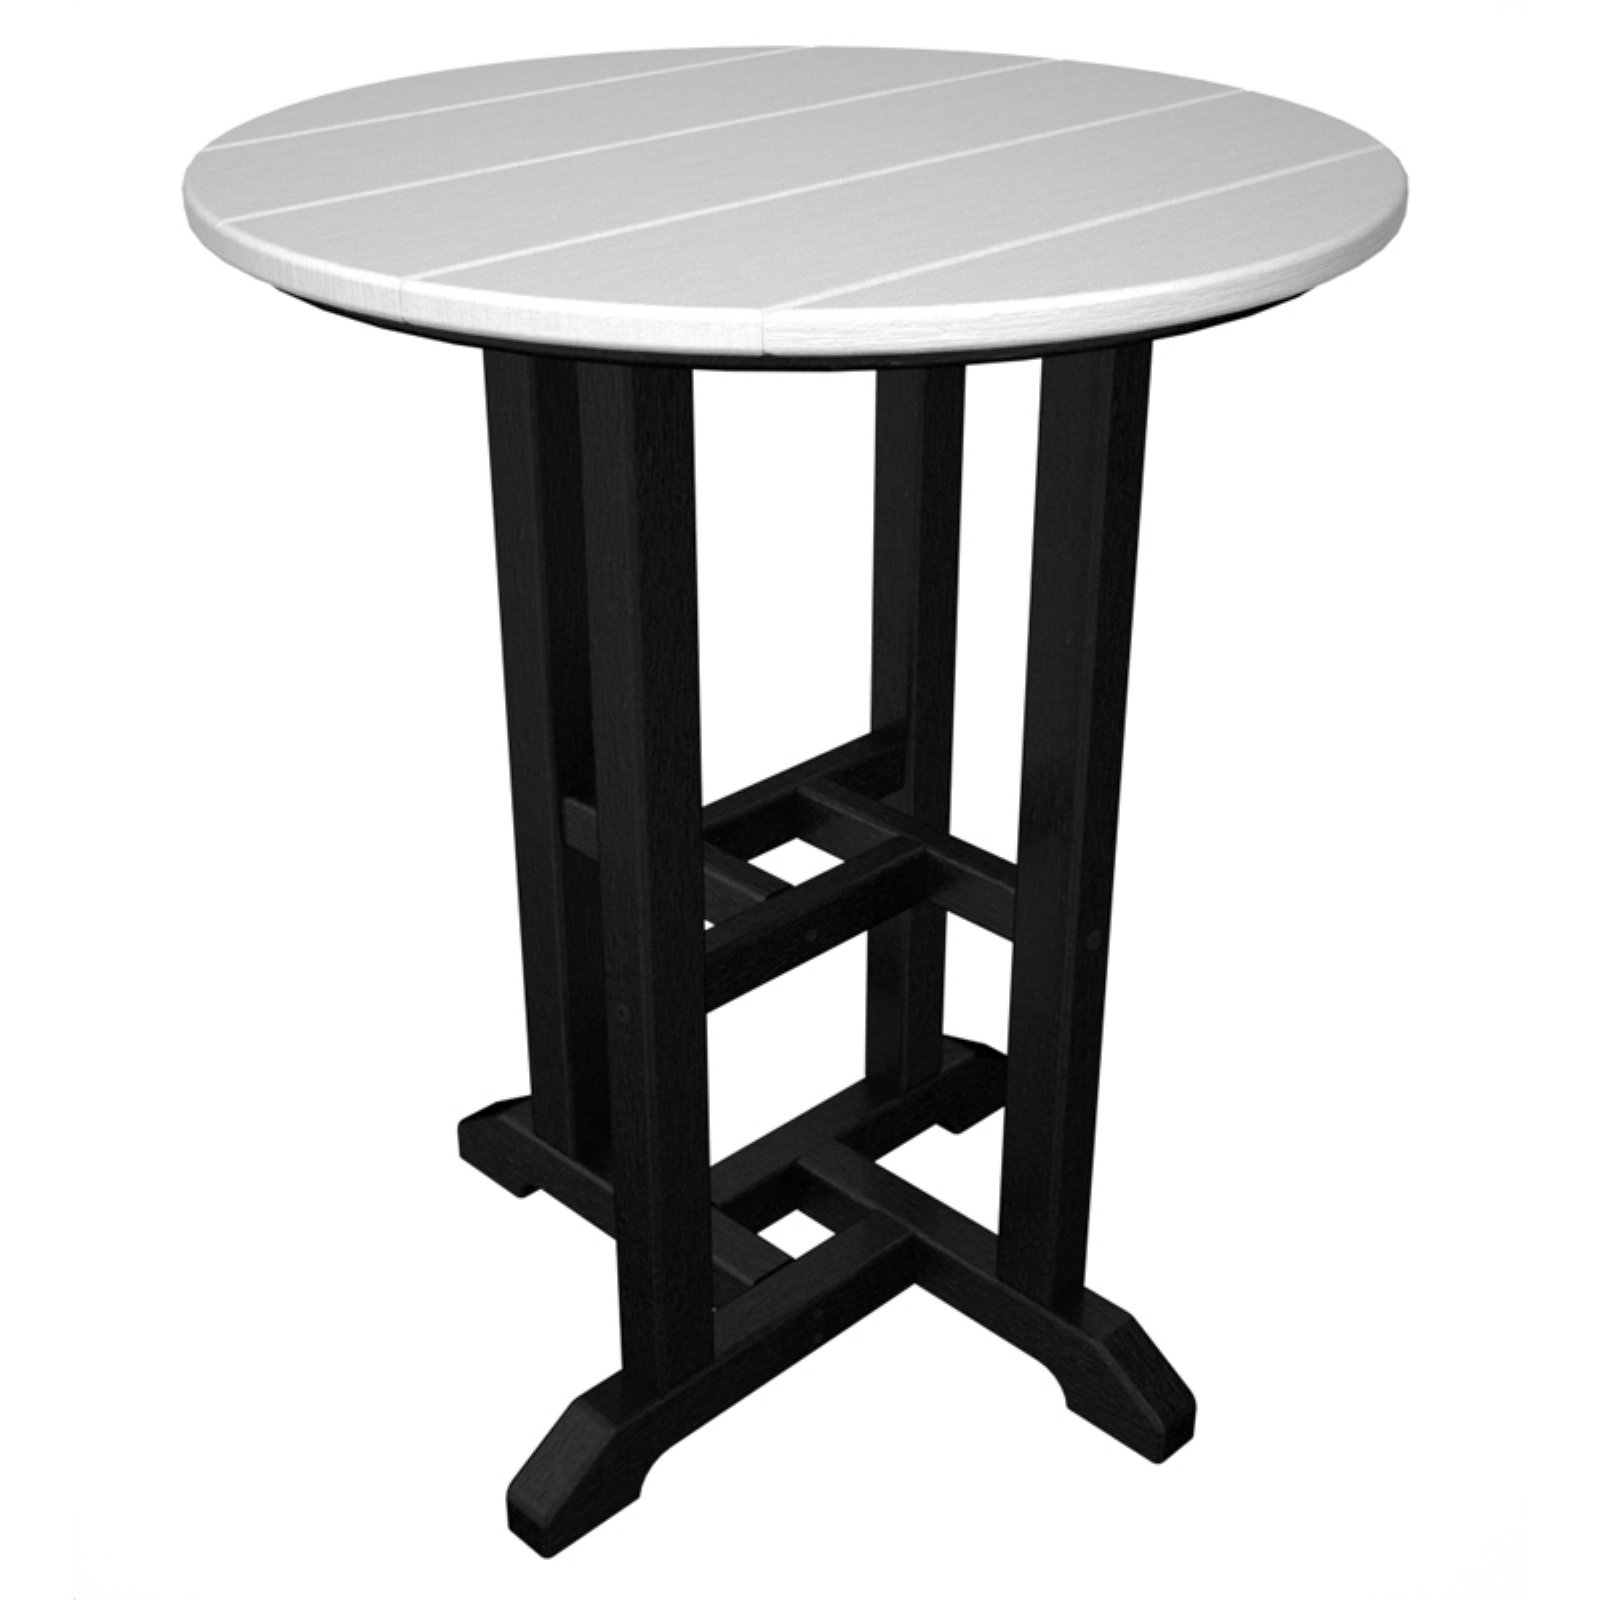 POLYWOOD® Contempo 24 in. POLYWOOD® Round Counter Height Table